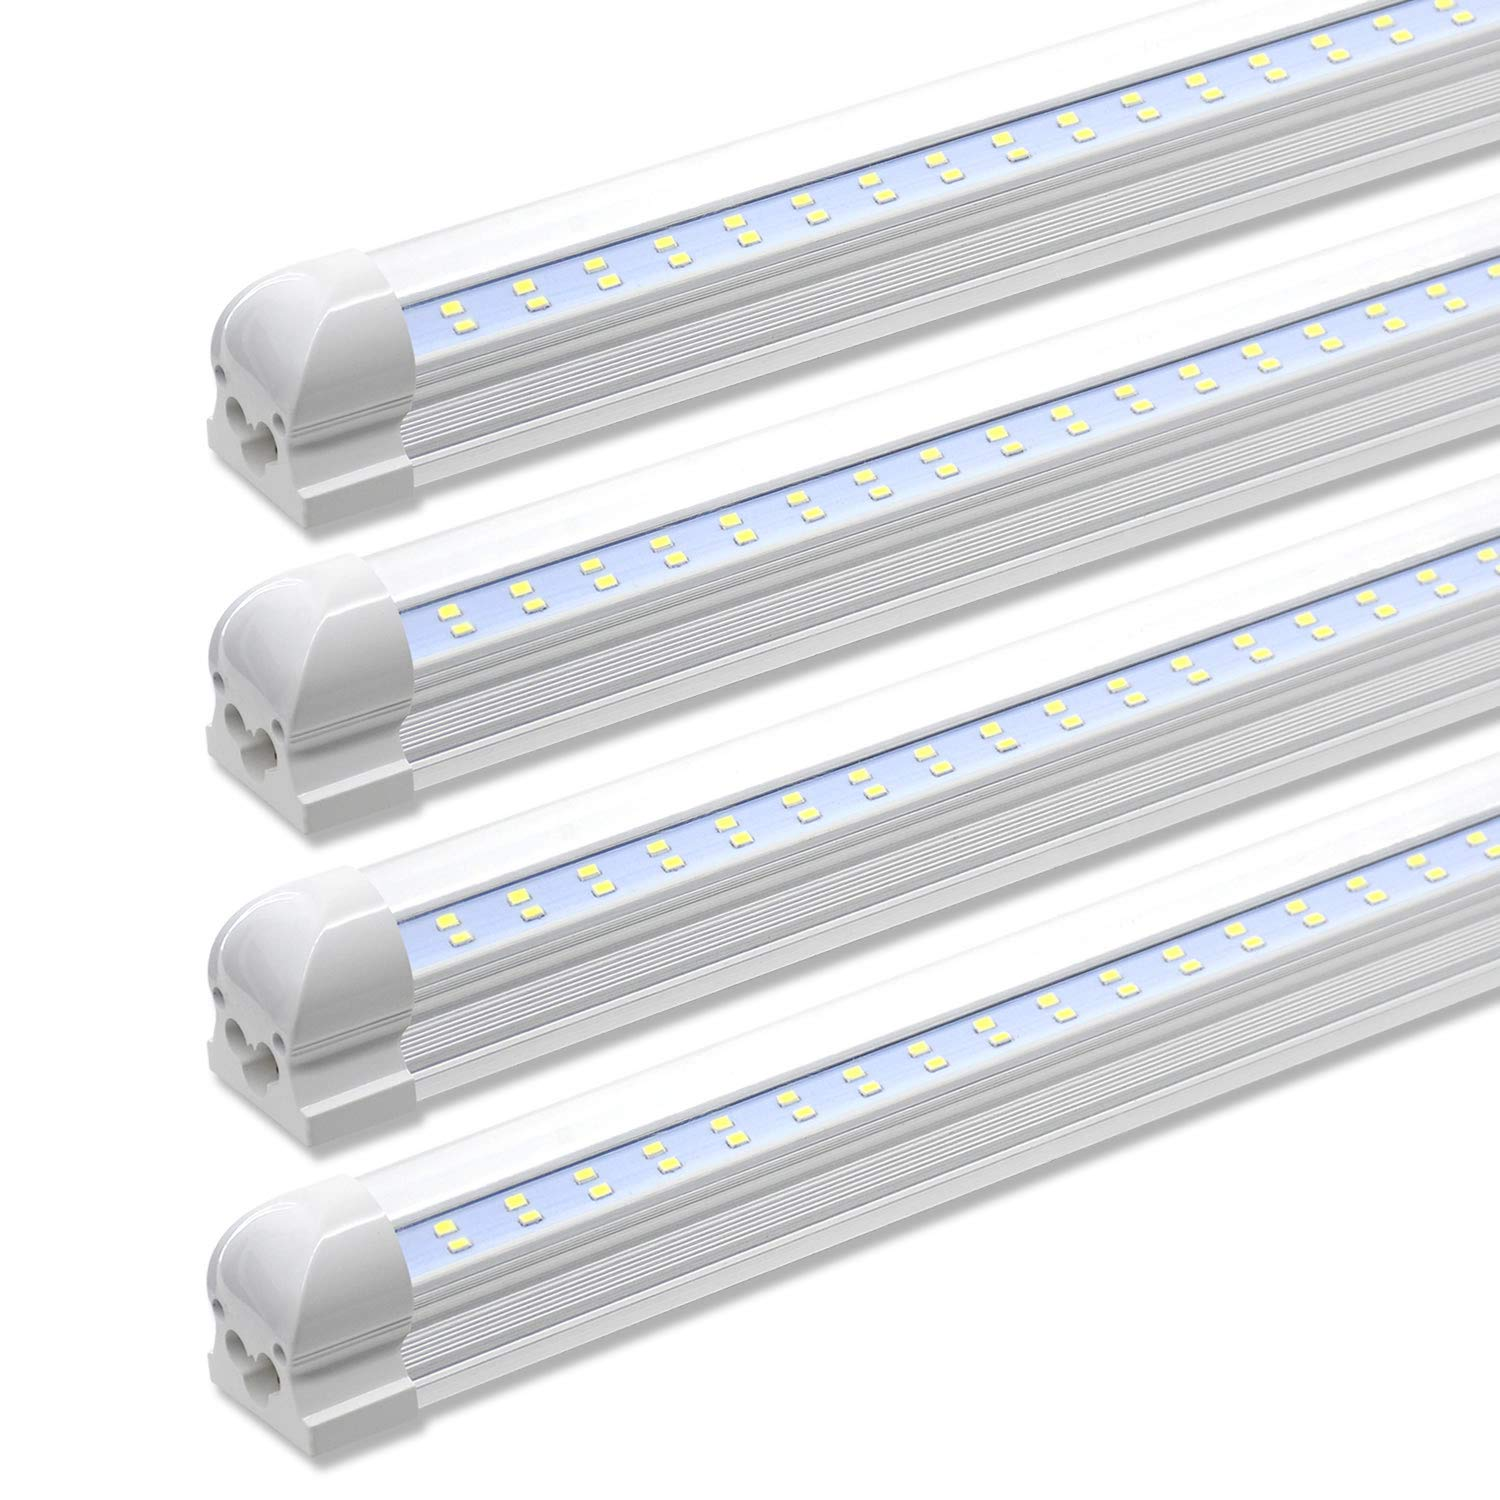 8ft led shop lights fixture 72w 7200lm 6000k cool white flat dual row t8 integrated led tube strip lights high output bulb for garage warehouse